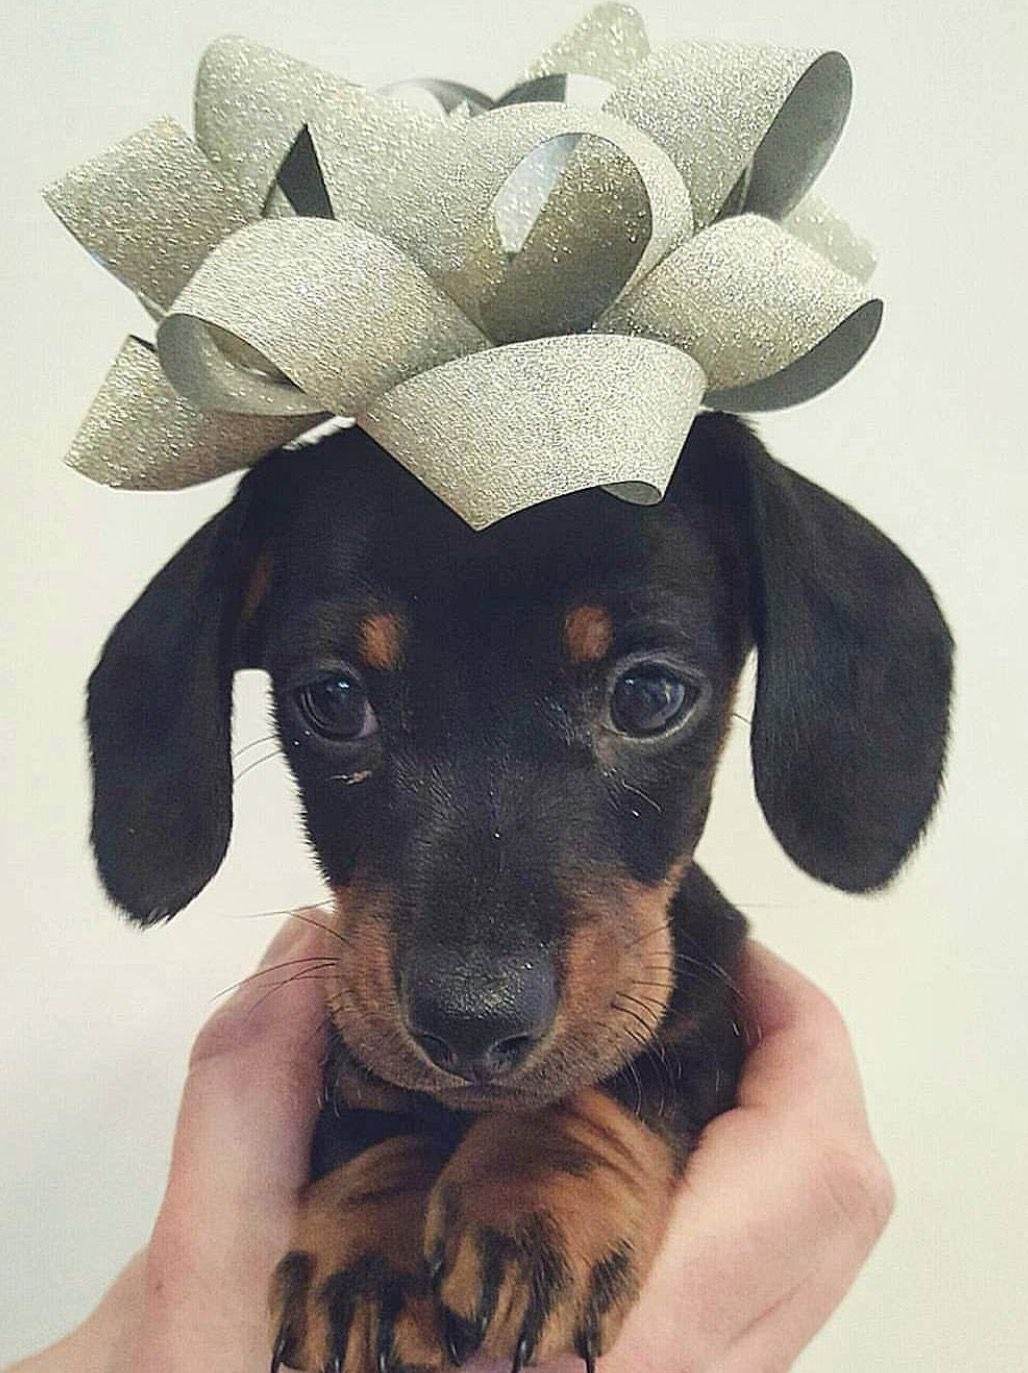 Pin by Kerry Strickland on KerryThe Love of Daschunds